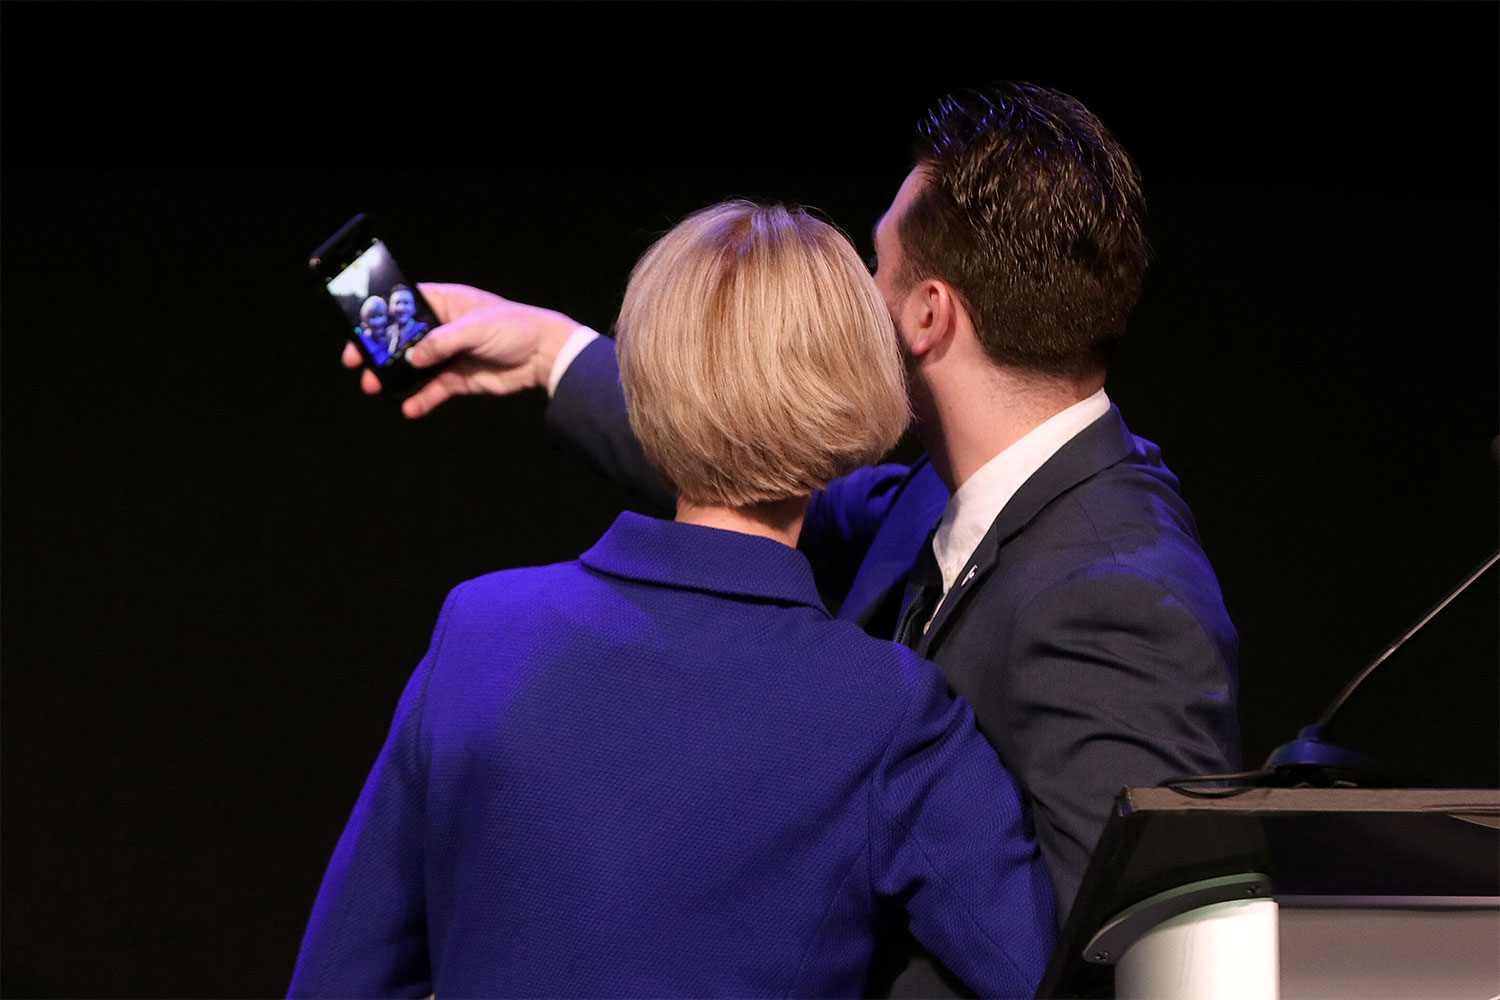 SUNY Student Assembly president Mike Braun takes a selfie with Chancellor Kristina Johnson.